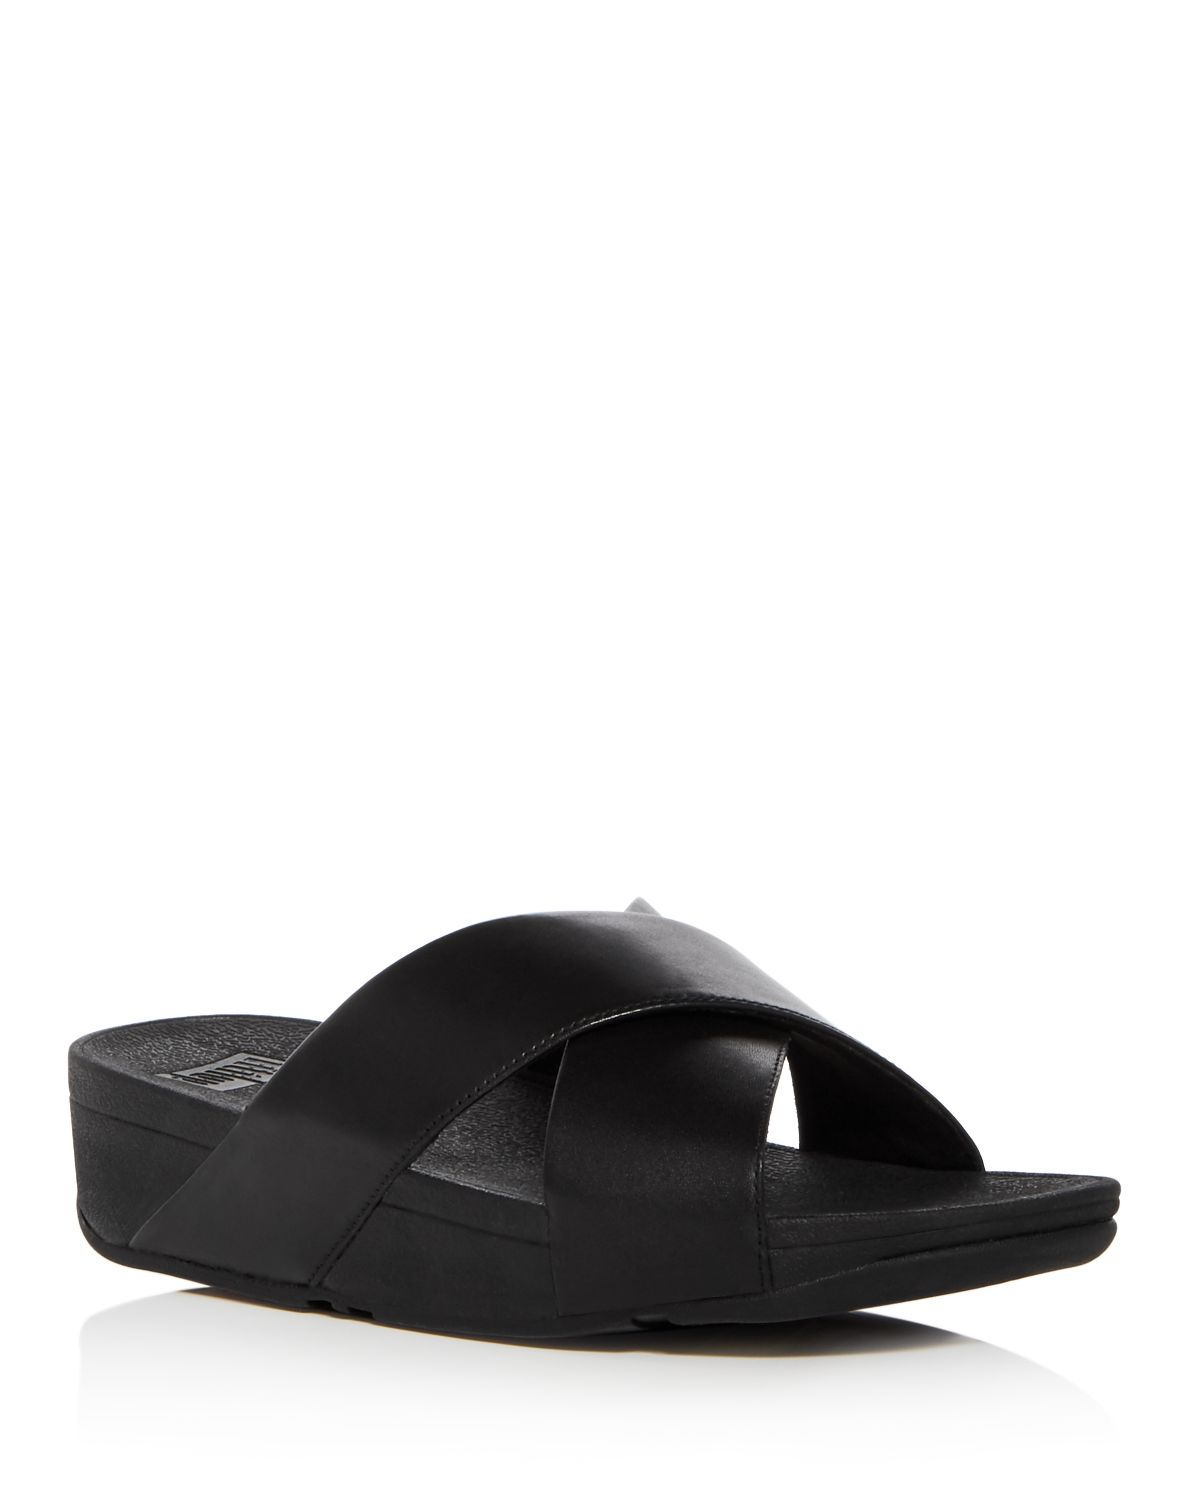 FitFlop Women's Lulu Leather Crisscross Platform Wedge Slide Sandals